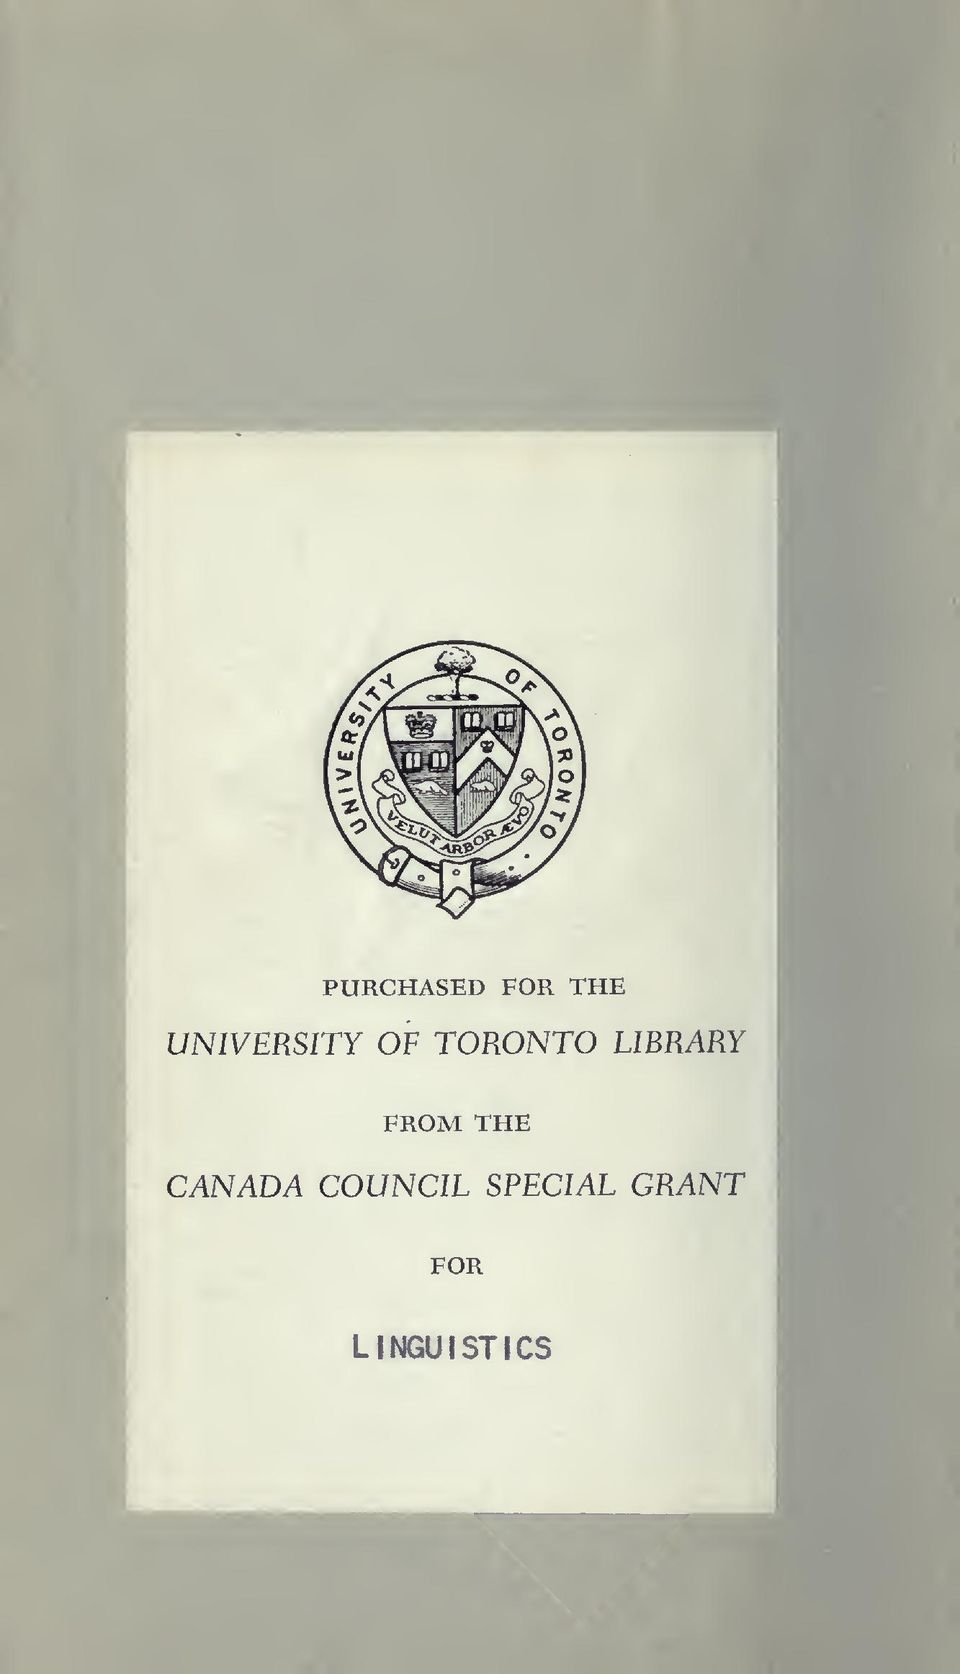 LIBRARY FROM THE CANADA